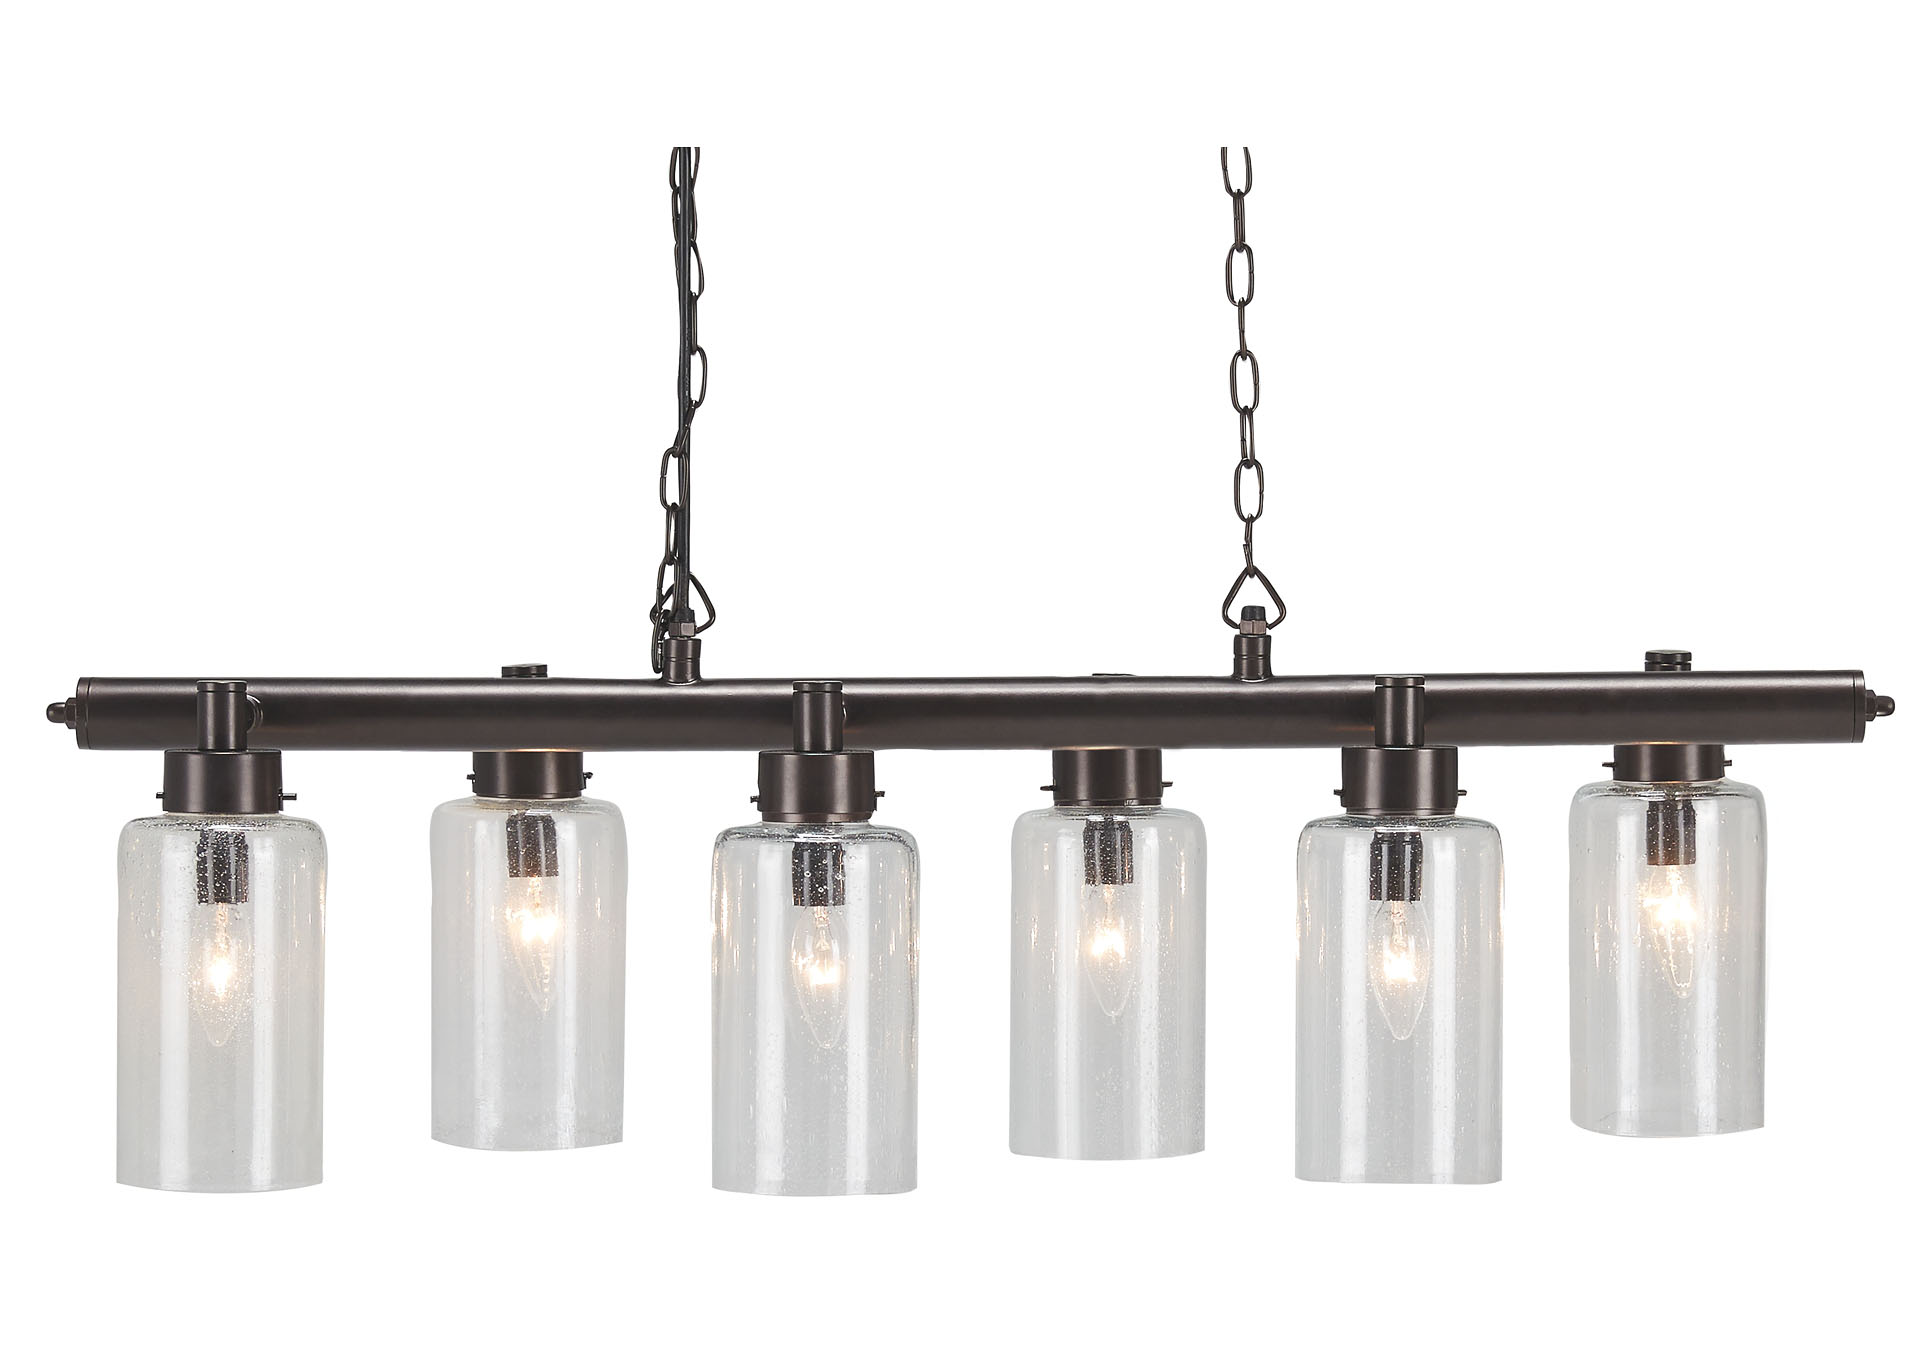 Felipe Clear/Bronze Finish Metal Pendant Light,Signature Design By Ashley